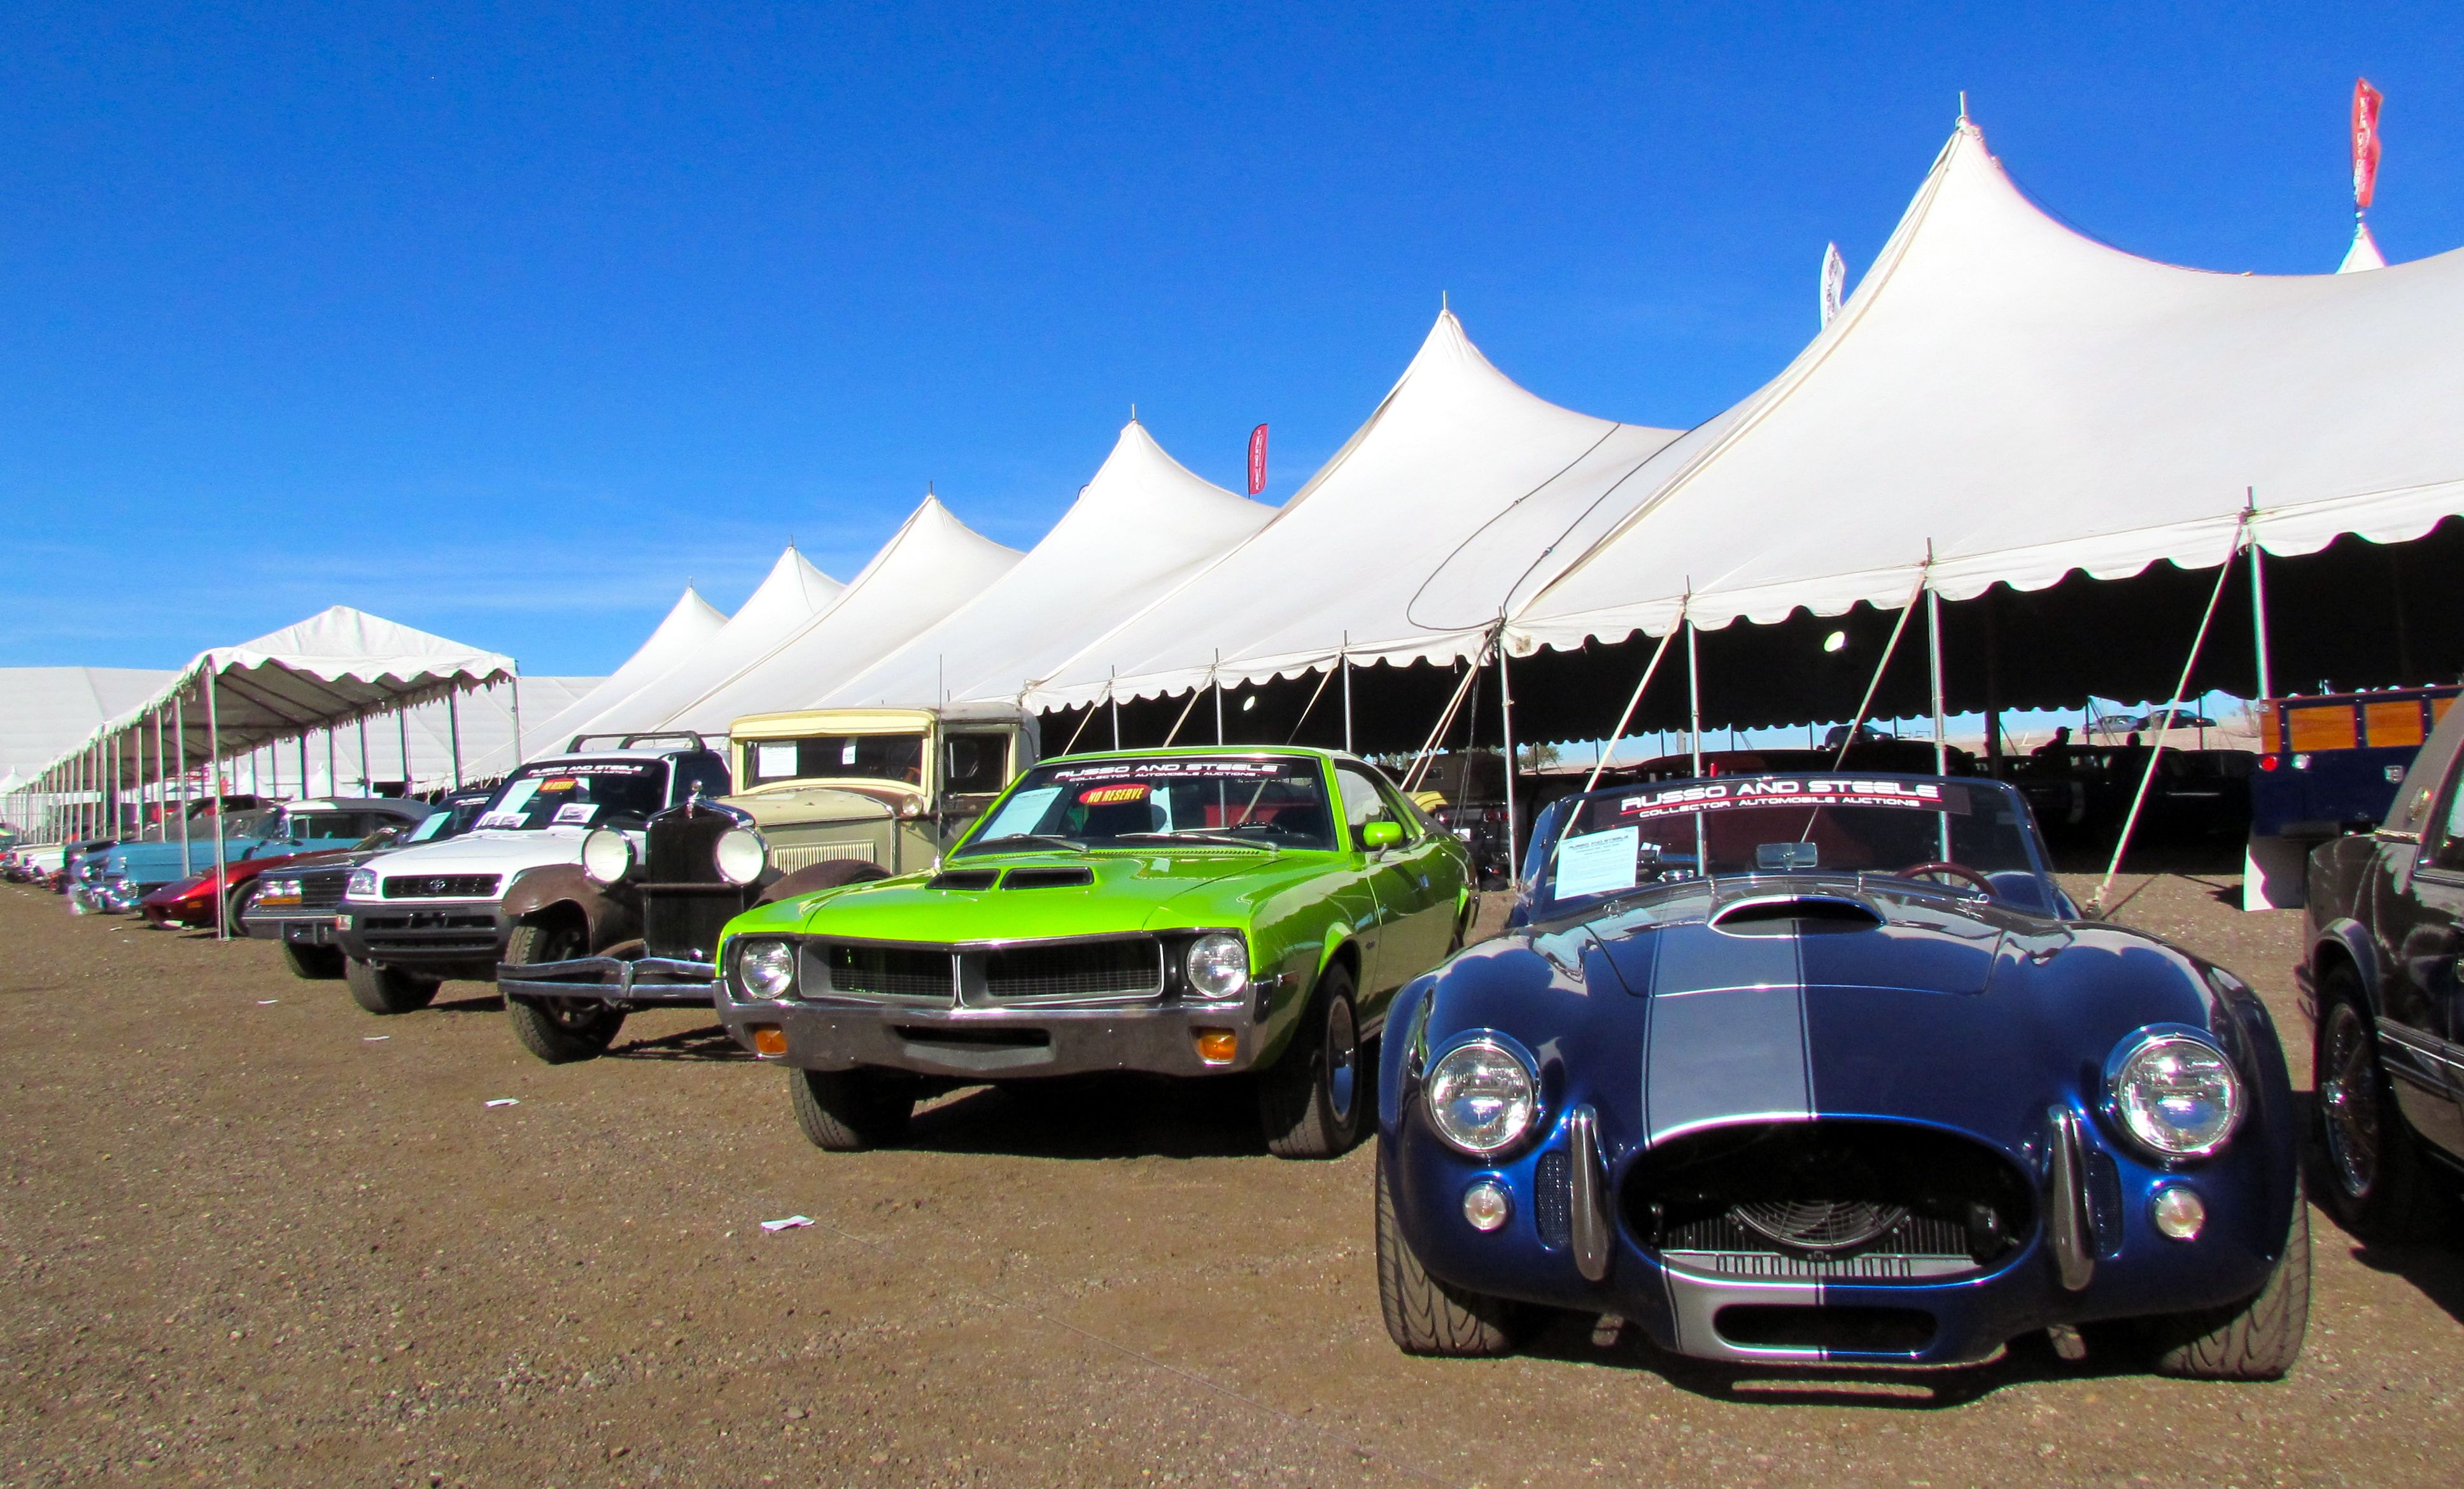 Arizona bids for title of best wintertime car show - ClassicCars.com ...